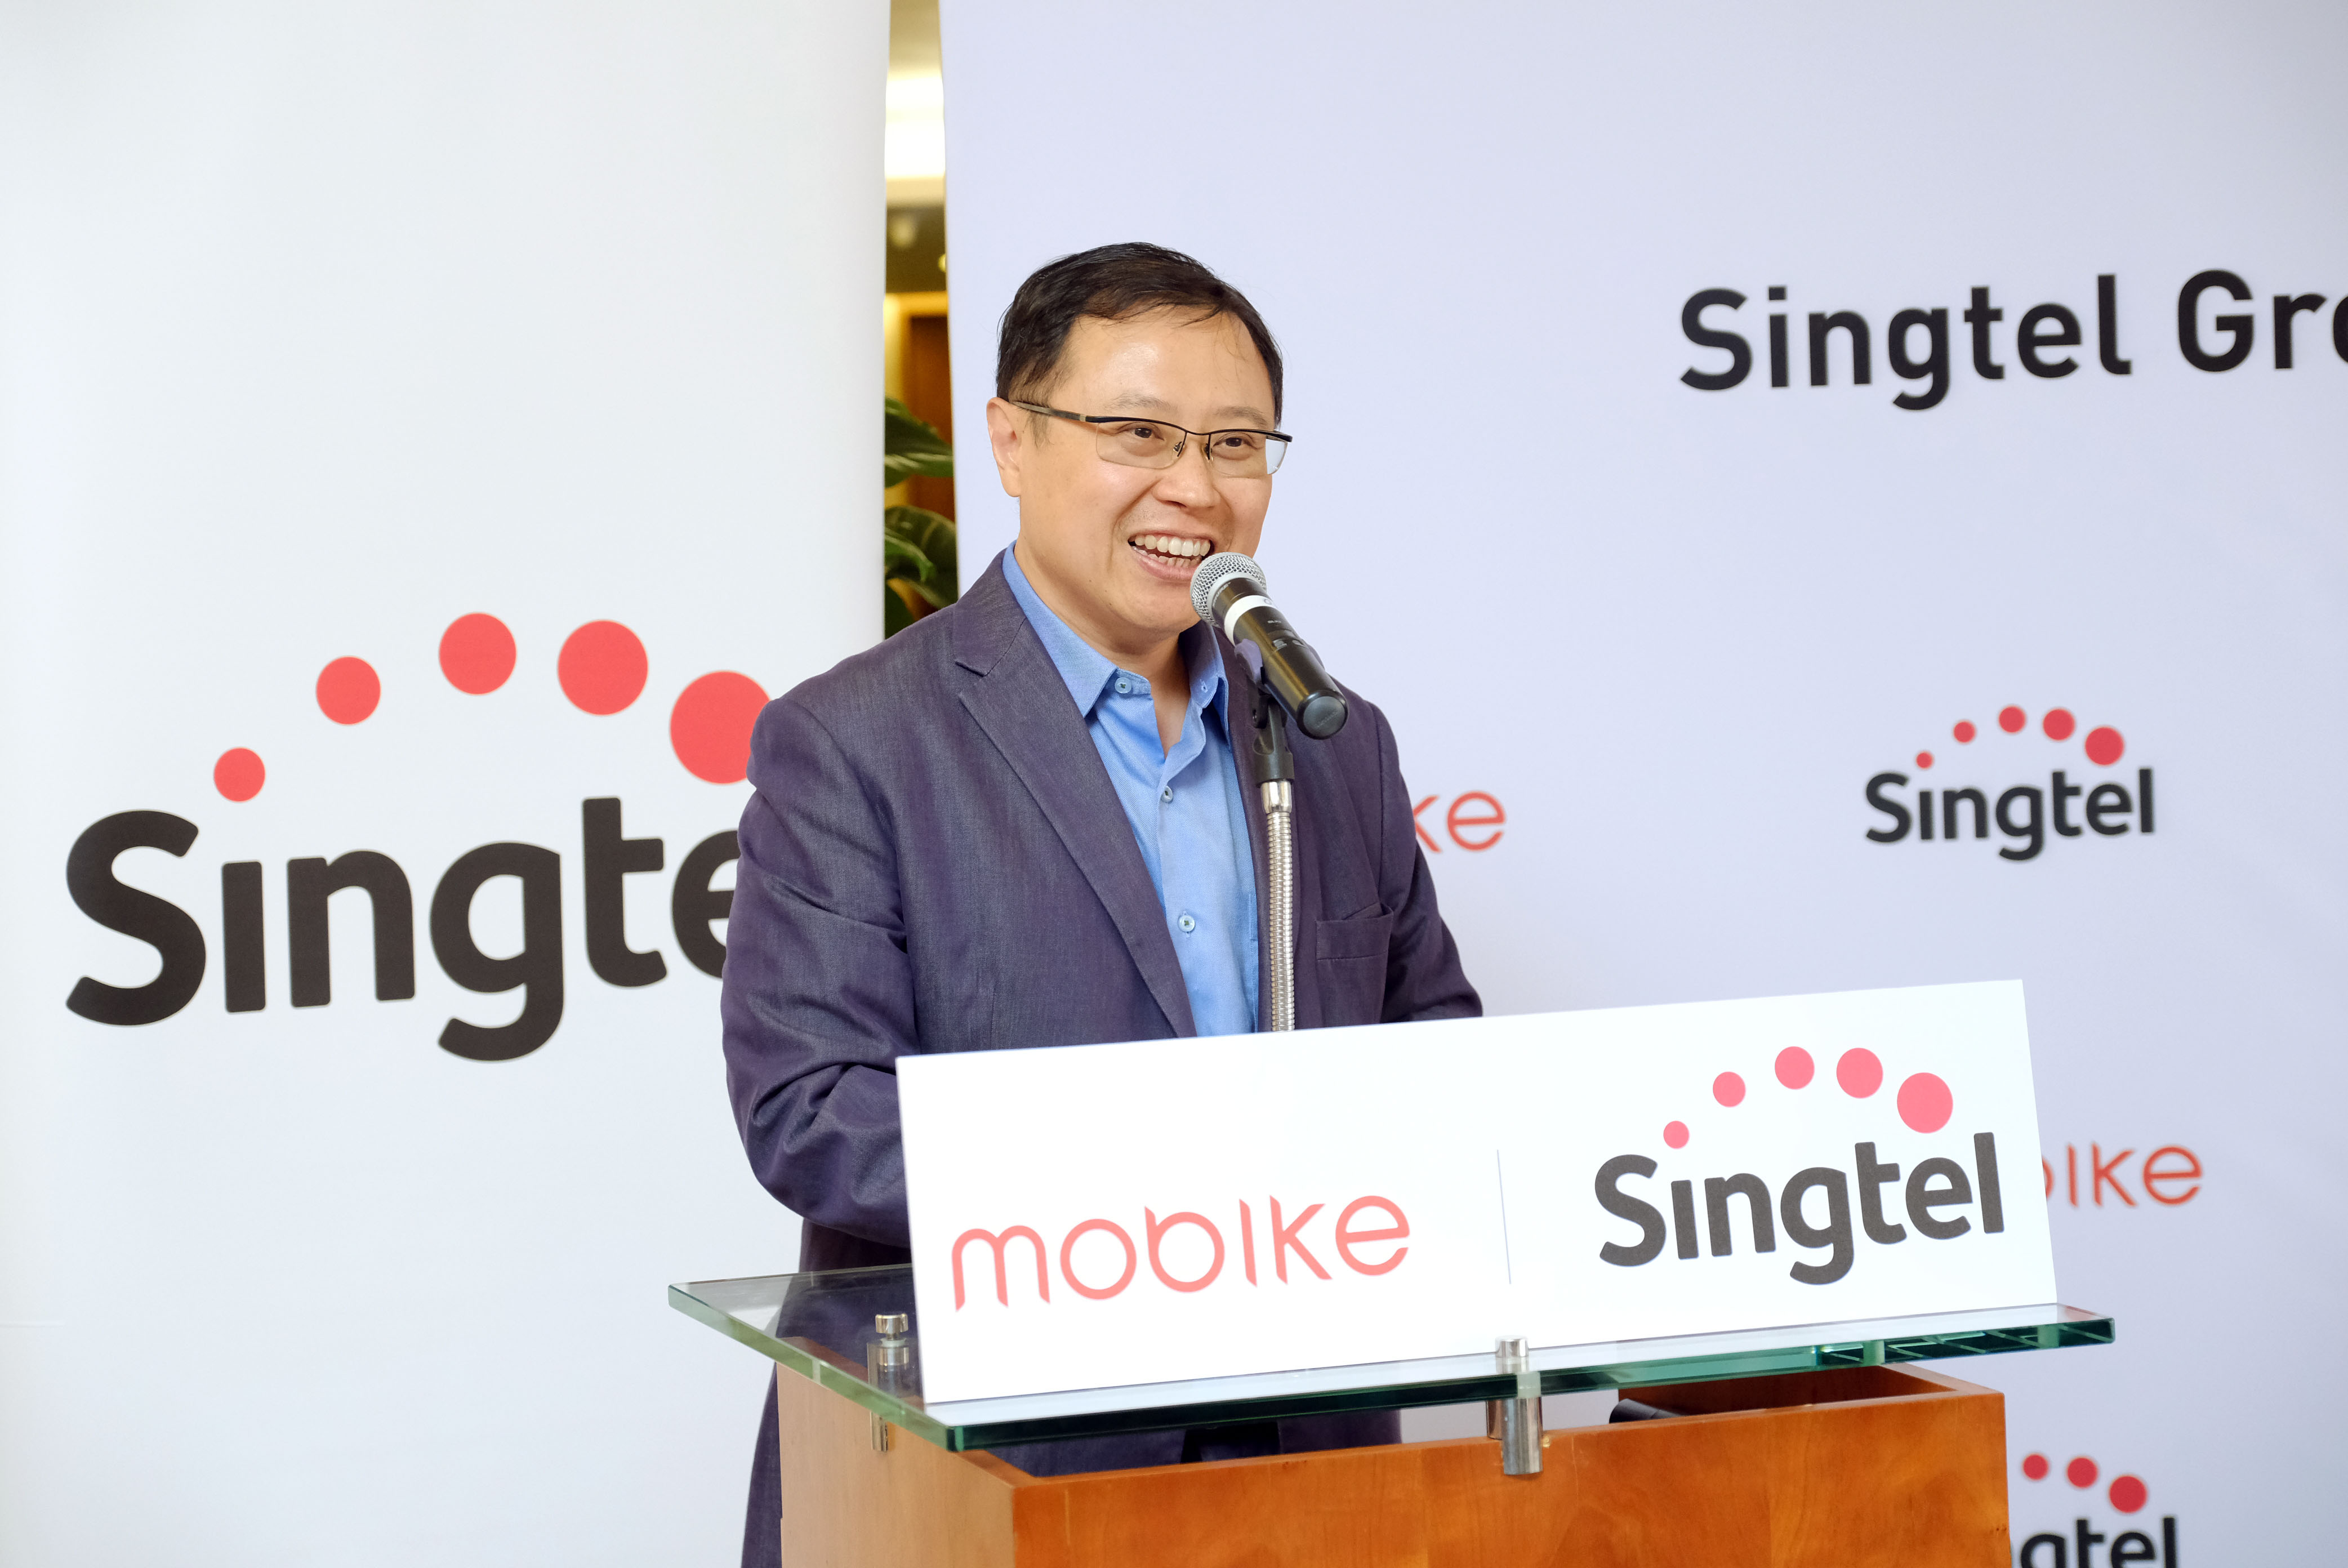 said rapid smartphone growth and the expansion of the sharing economy are transforming customers' lives